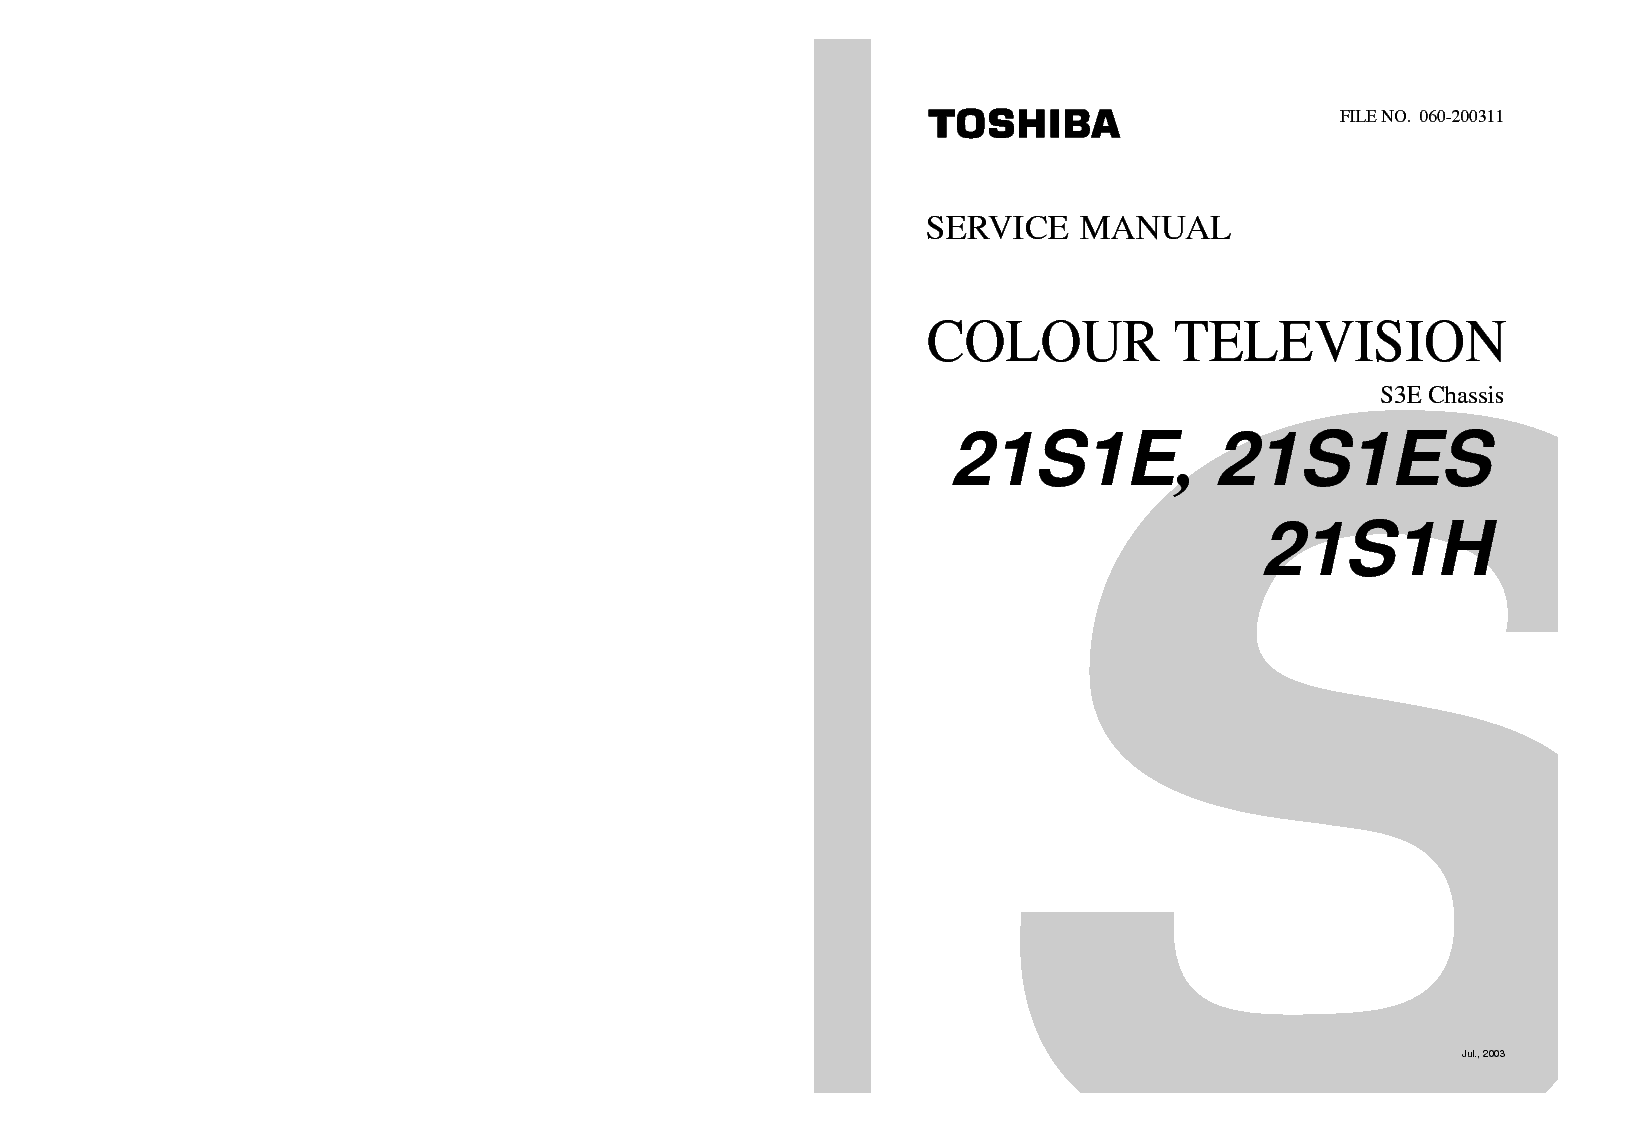 TOSHIBA VTV1402 TV-VCR USER MANUAL Service Manual download